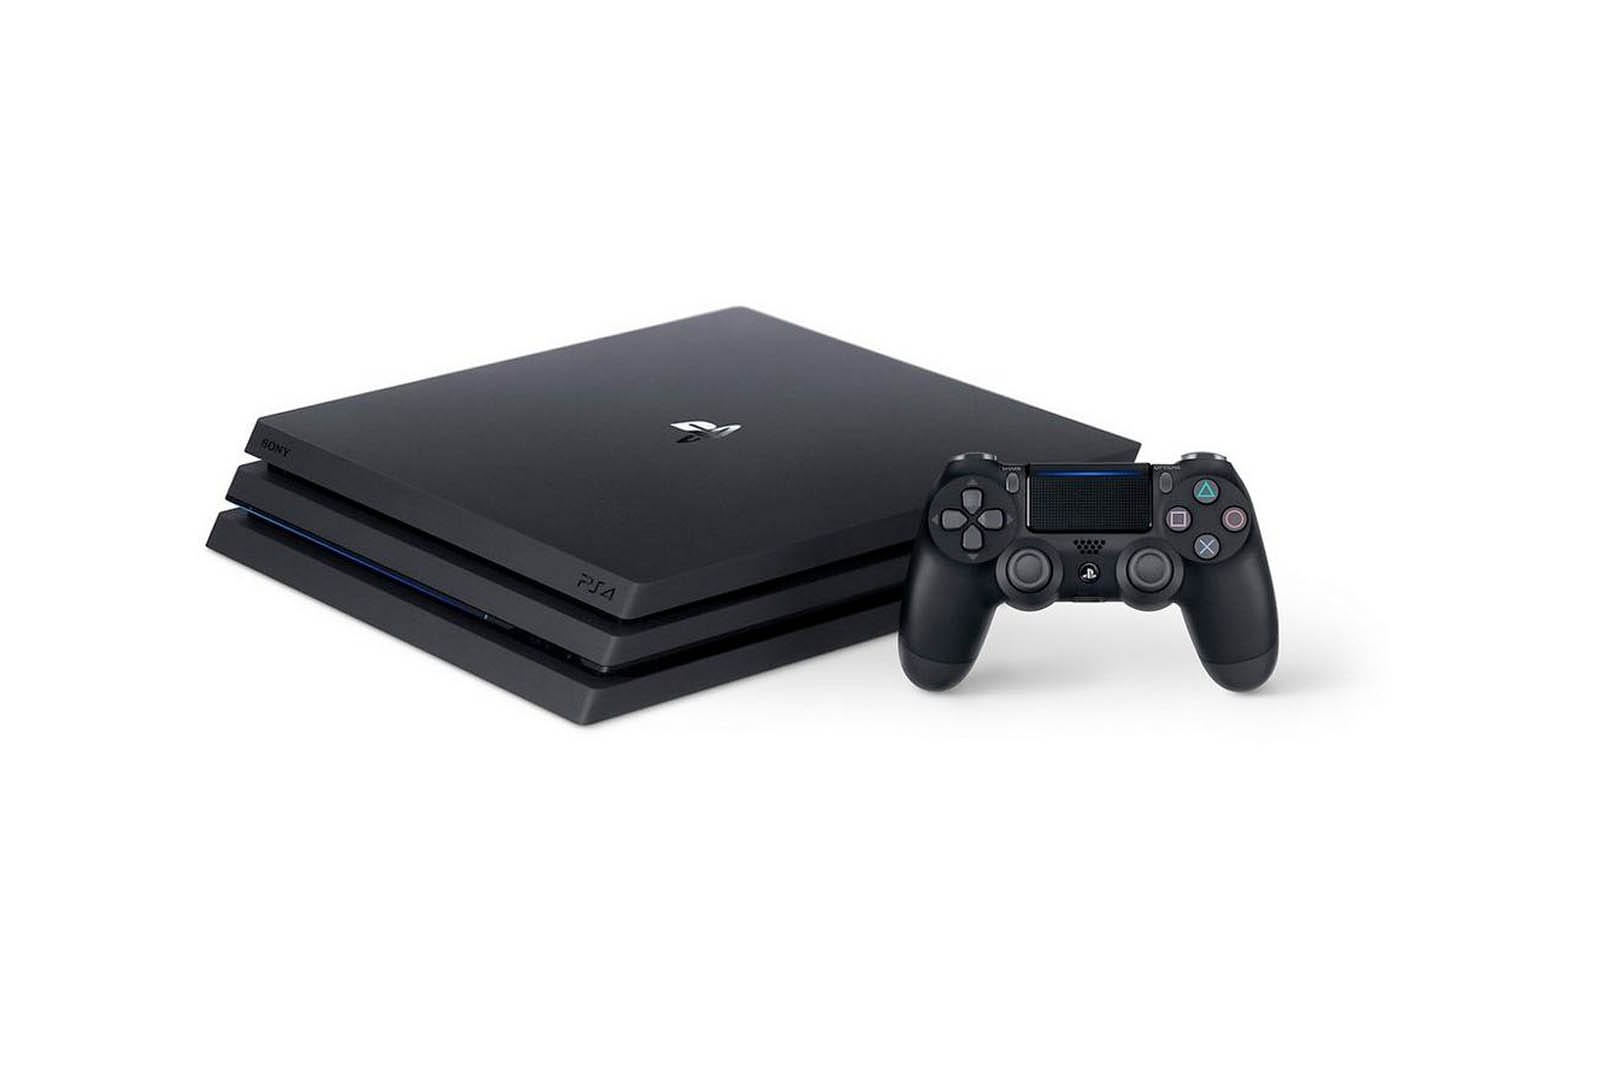 Wirecutter's best deals: Save $85 on the PlayStation 4 Pro